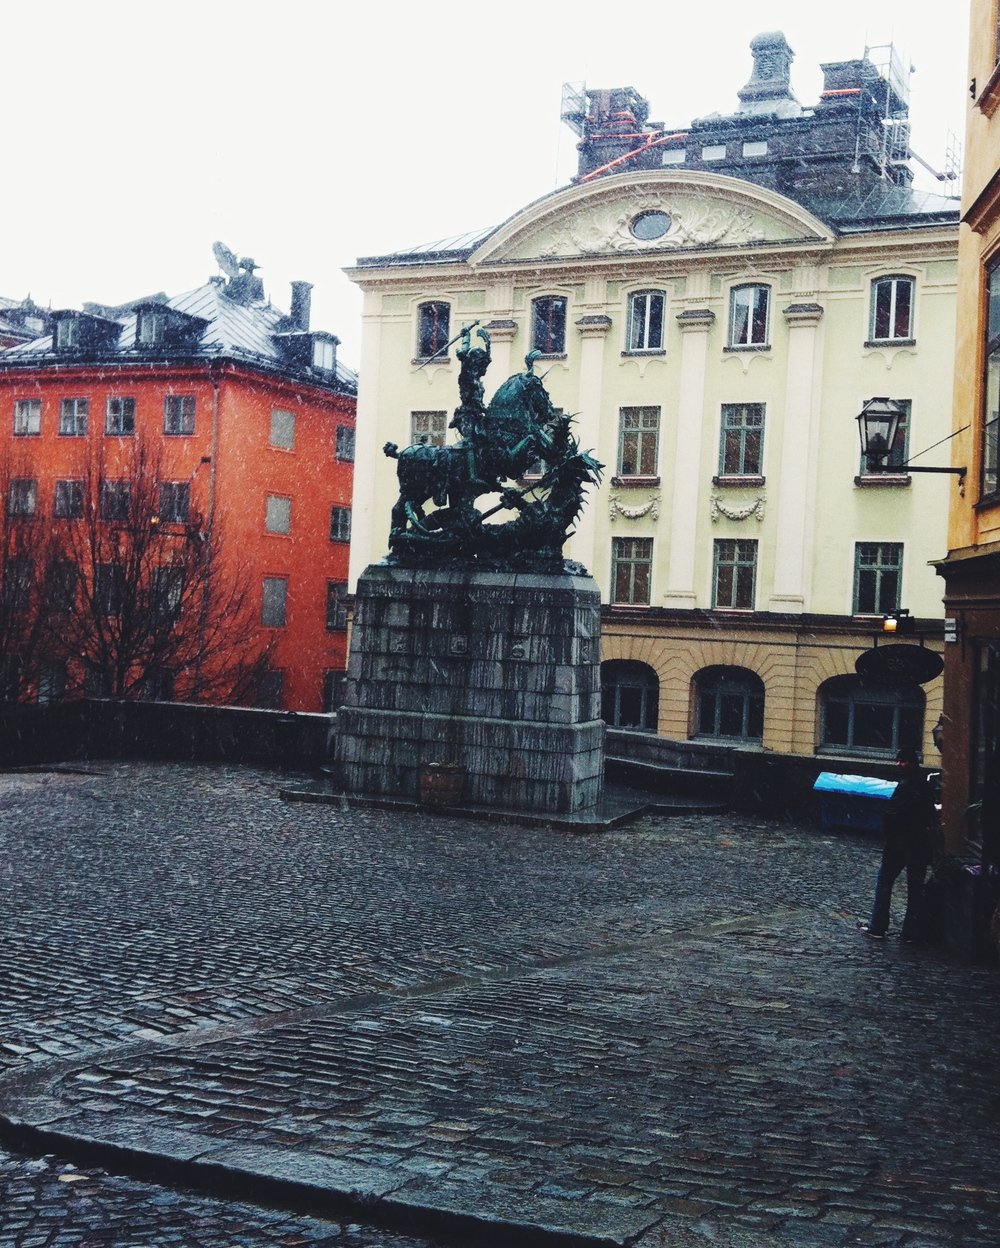 snowing in Gamla Stan